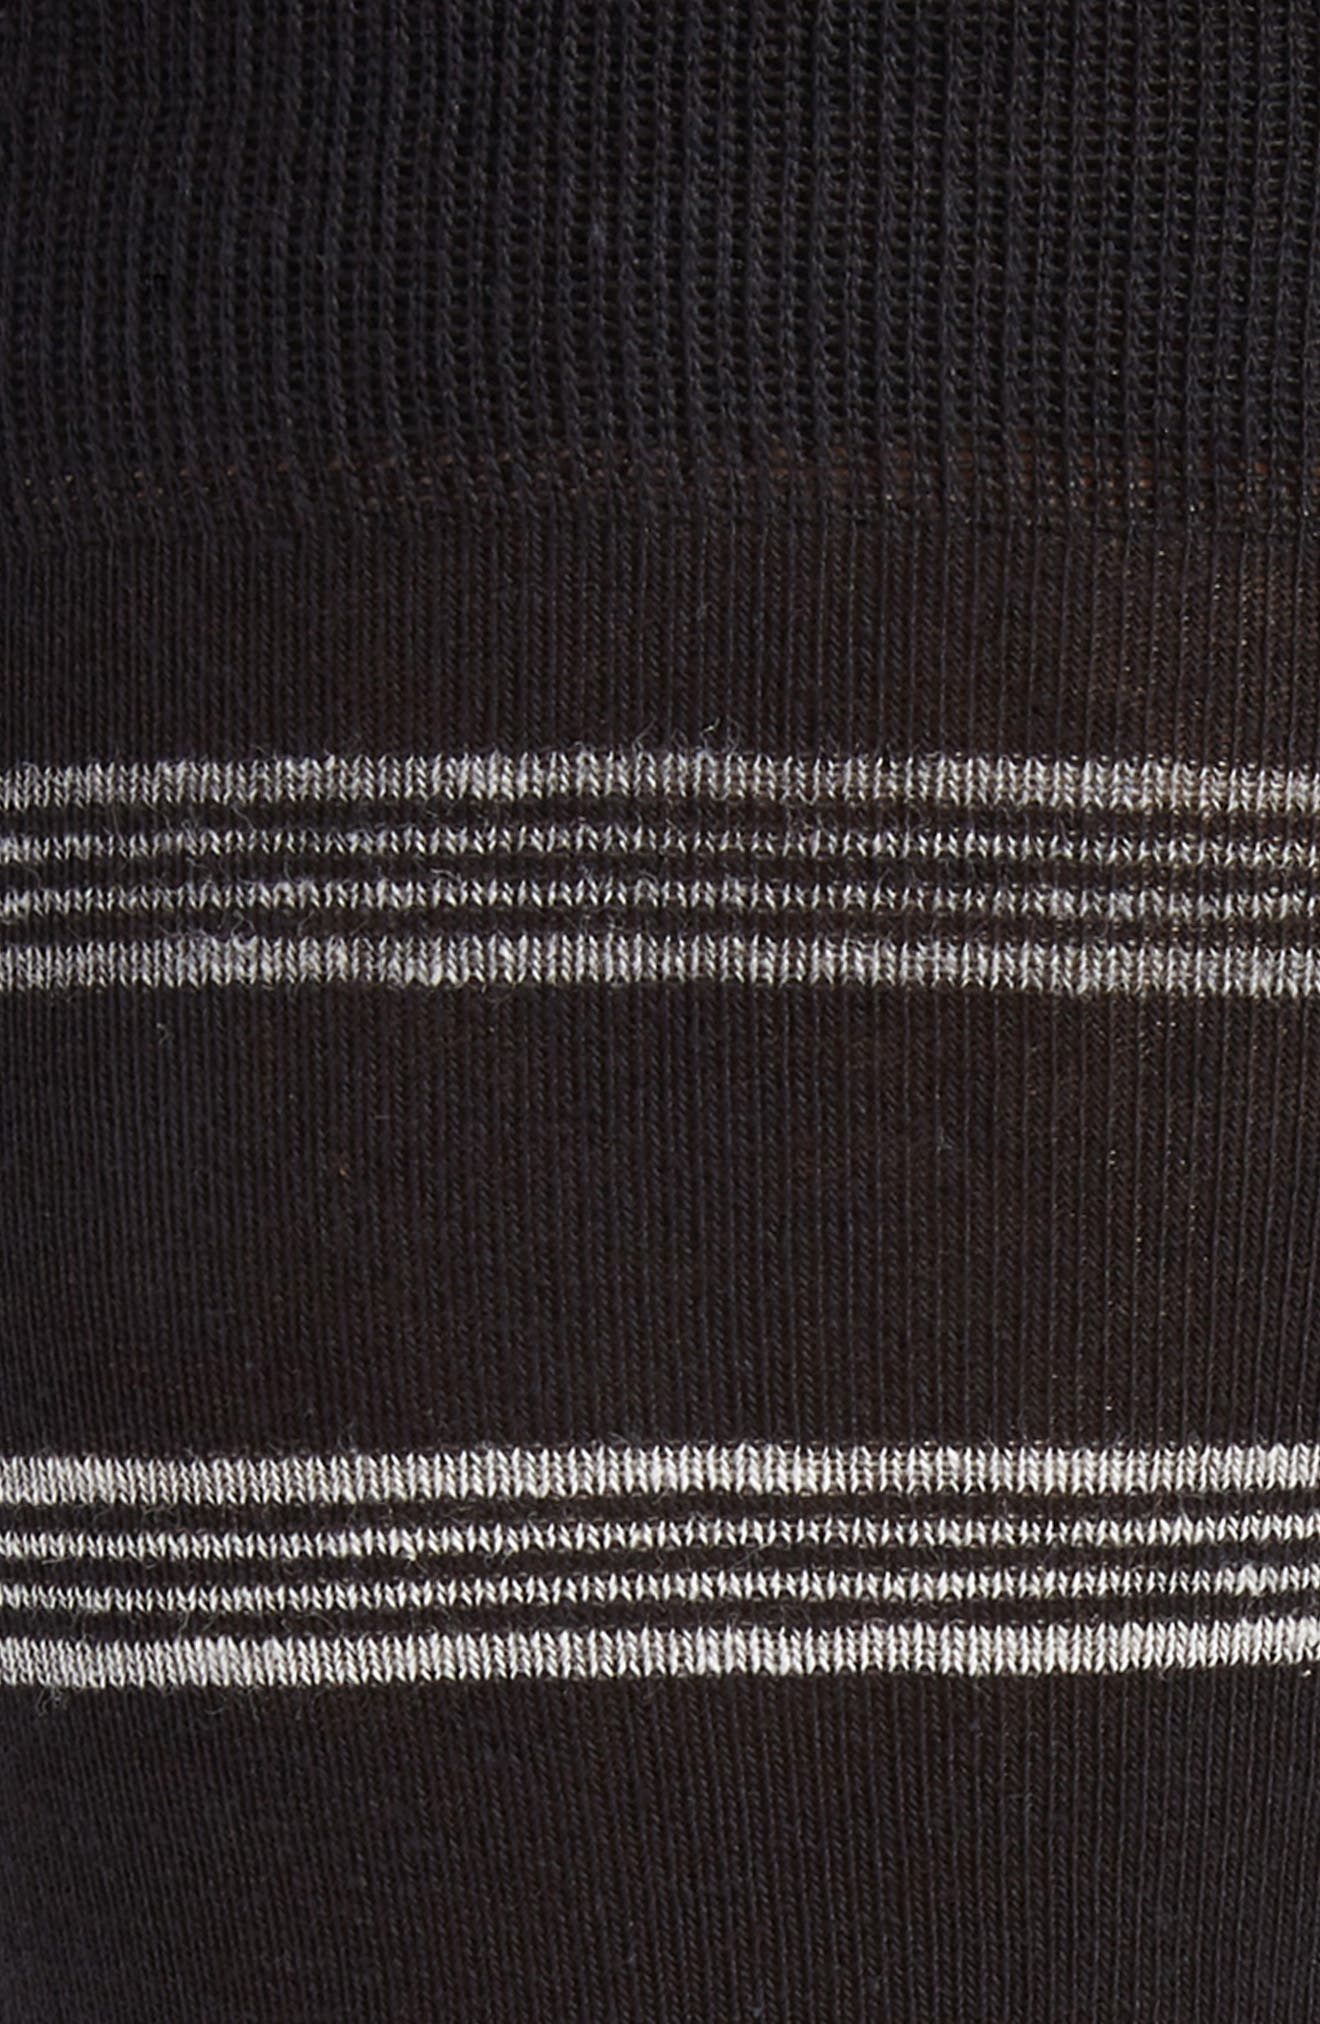 Stripe Socks,                             Alternate thumbnail 2, color,                             BLACK/ GREY